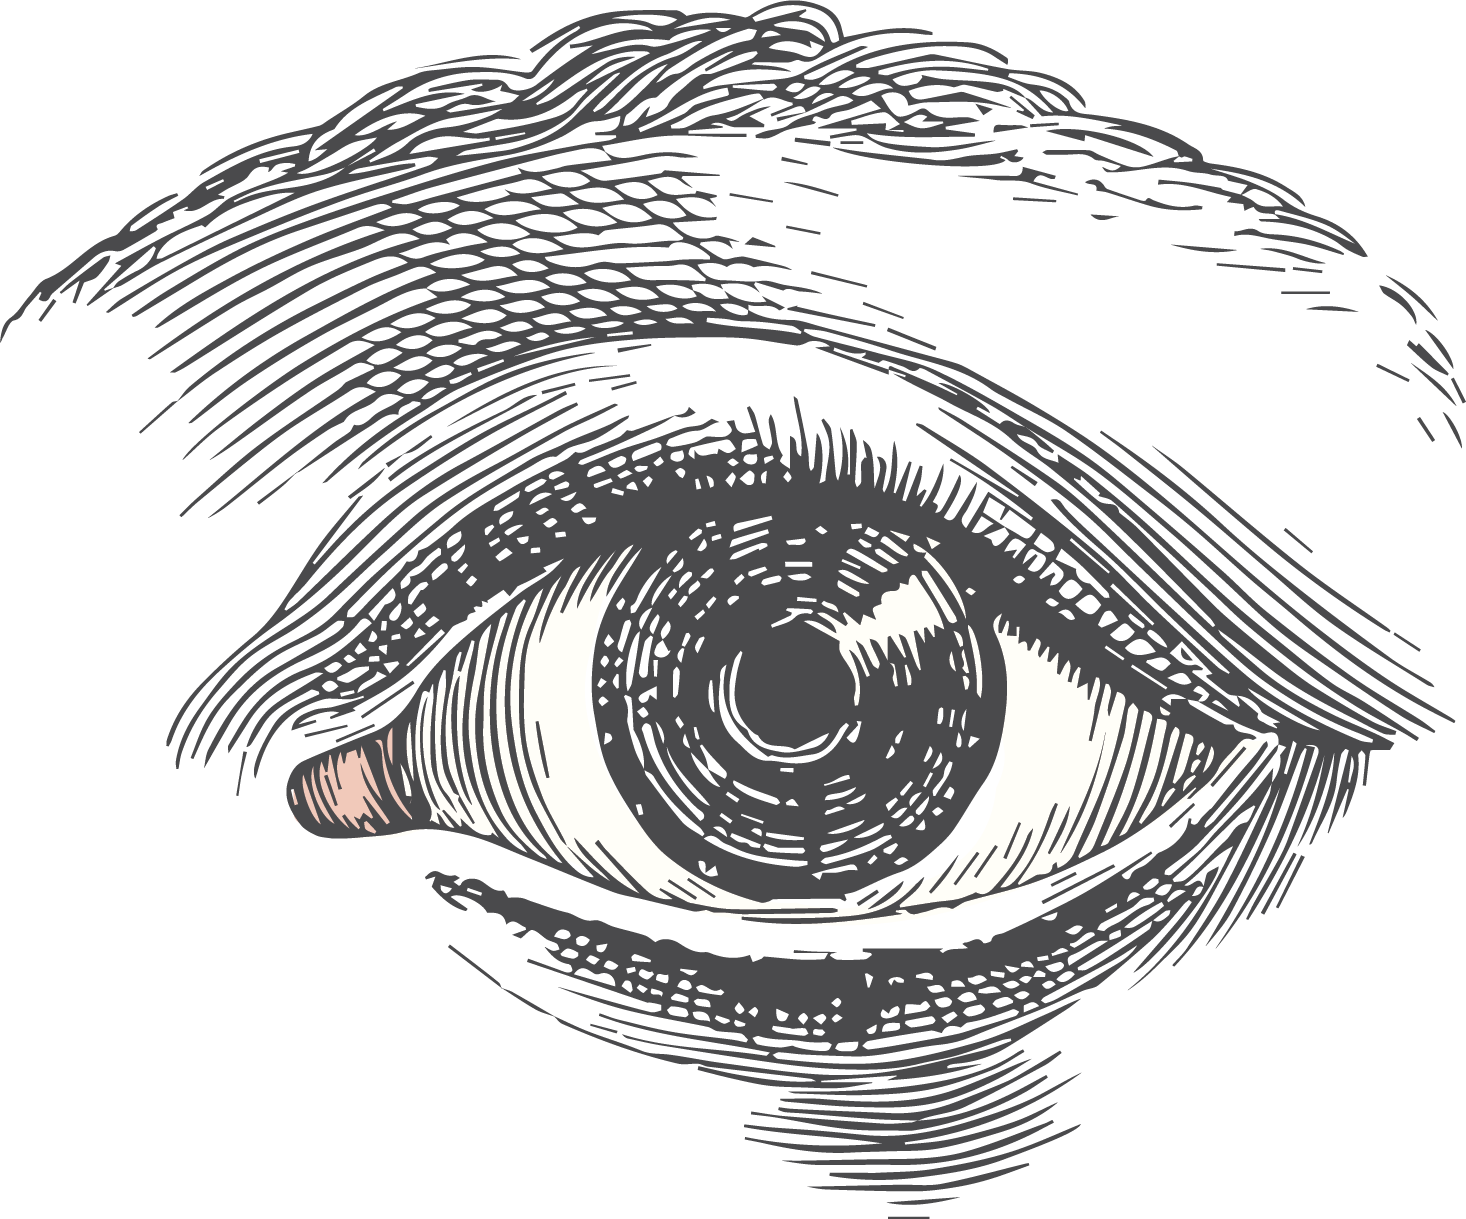 png freeuse stock Blindfold drawing eye. Collection of free academy